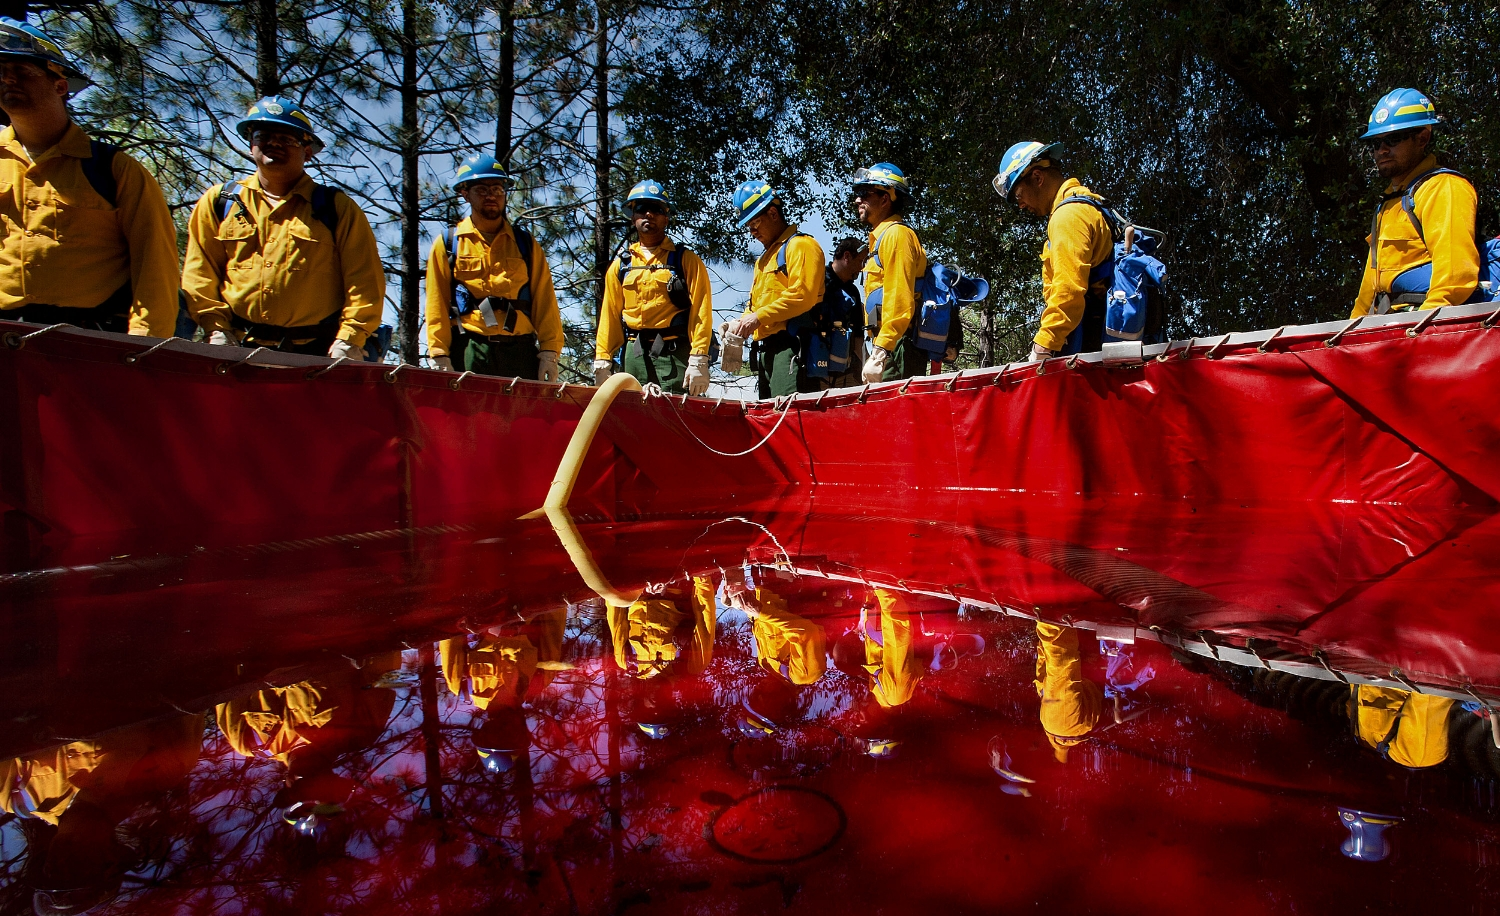 Firefighters line up around a makeshift water tank during a training exercise at the California Conservation Corps facilities in Auburn on Wednesday, May 9, 2012.